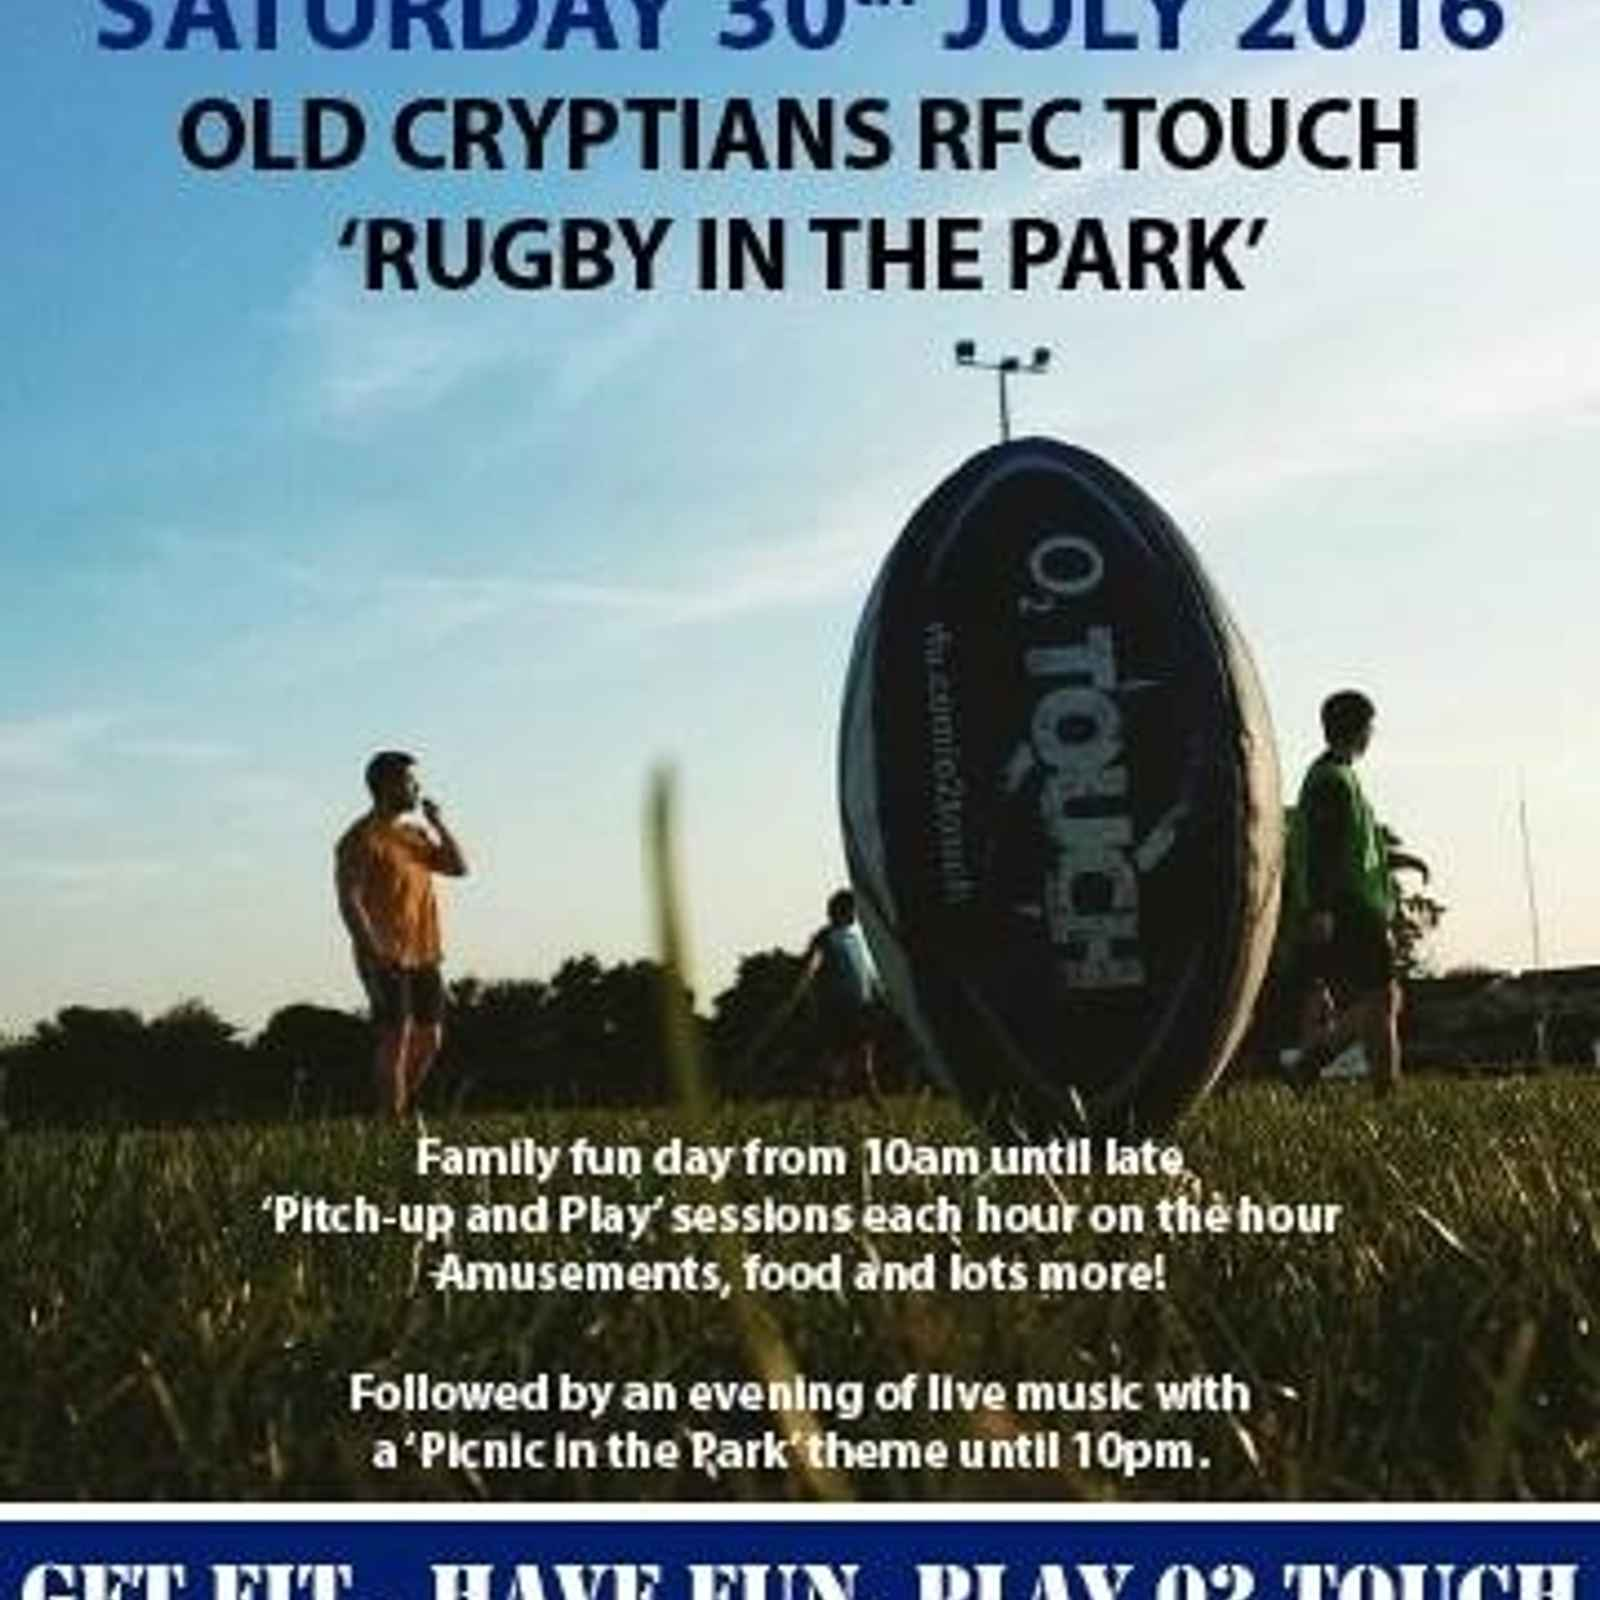 Touch Rugby Festival - Saturday 30th July